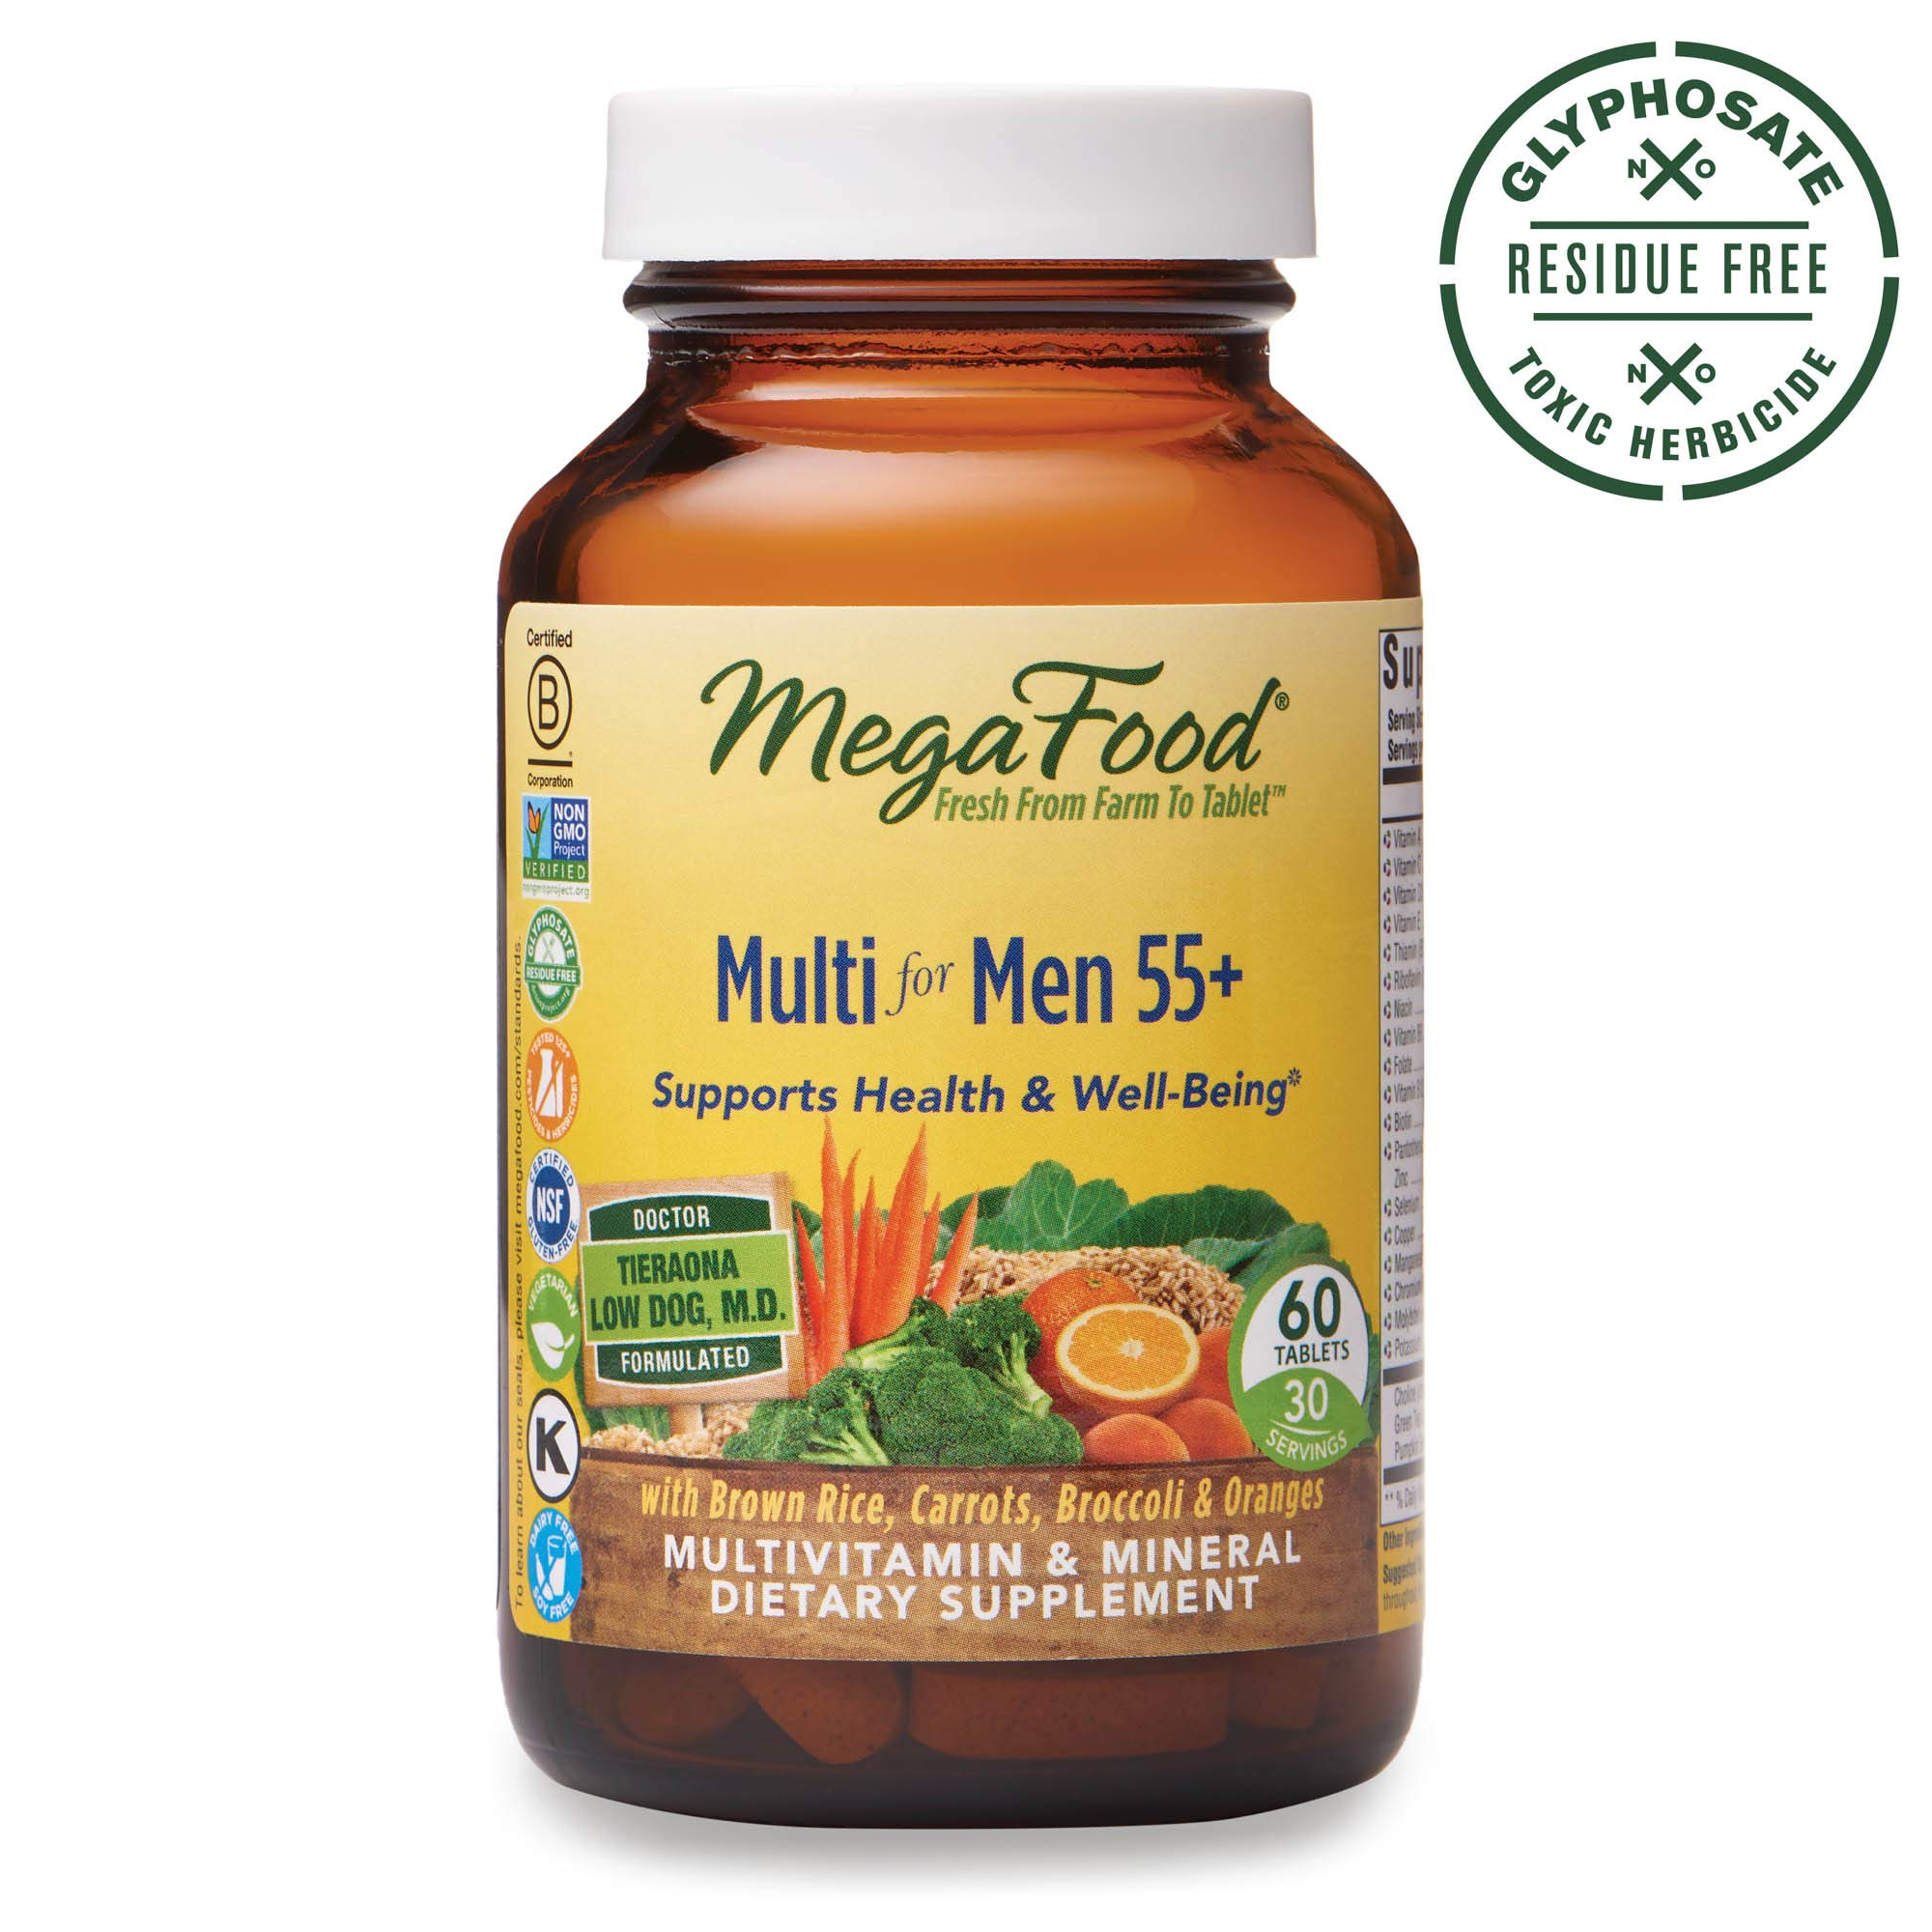 MegaFood, Multi for Men 55+, Supports Optimal Health and Wellbeing, Multivitamin and Mineral Supplement, Gluten Free, Vegetarian, 60 Tablets (30 Servings) (FFP) by MegaFood